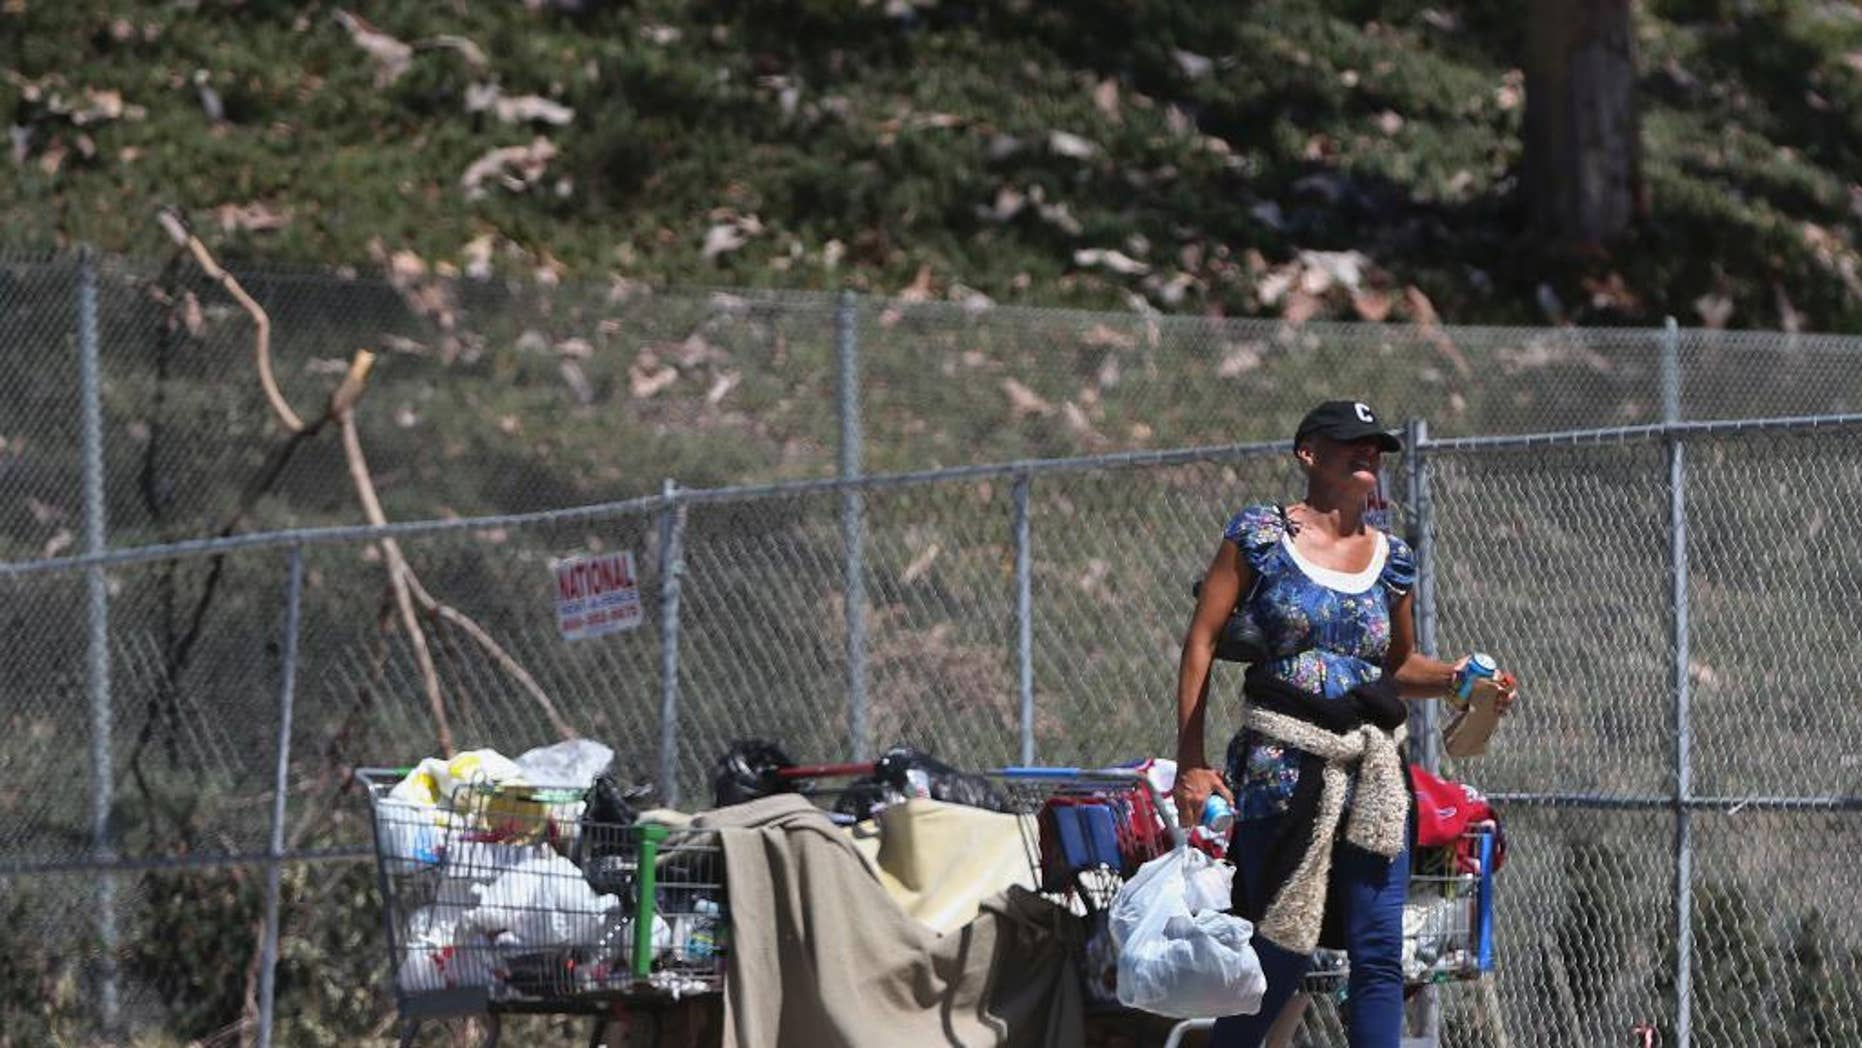 A woman keeps her belongings in shopping carts near an underpass where homeless people sleep Wednesday, July 6, 2016, in San Diego. Another San Diego homeless man was seriously injured early Wednesday by an attacker police say struck while he was asleep and tried to set him on fire, the latest in a spate of attacks on transients that have left two dead. (AP Photo/Lenny Ignelzi)